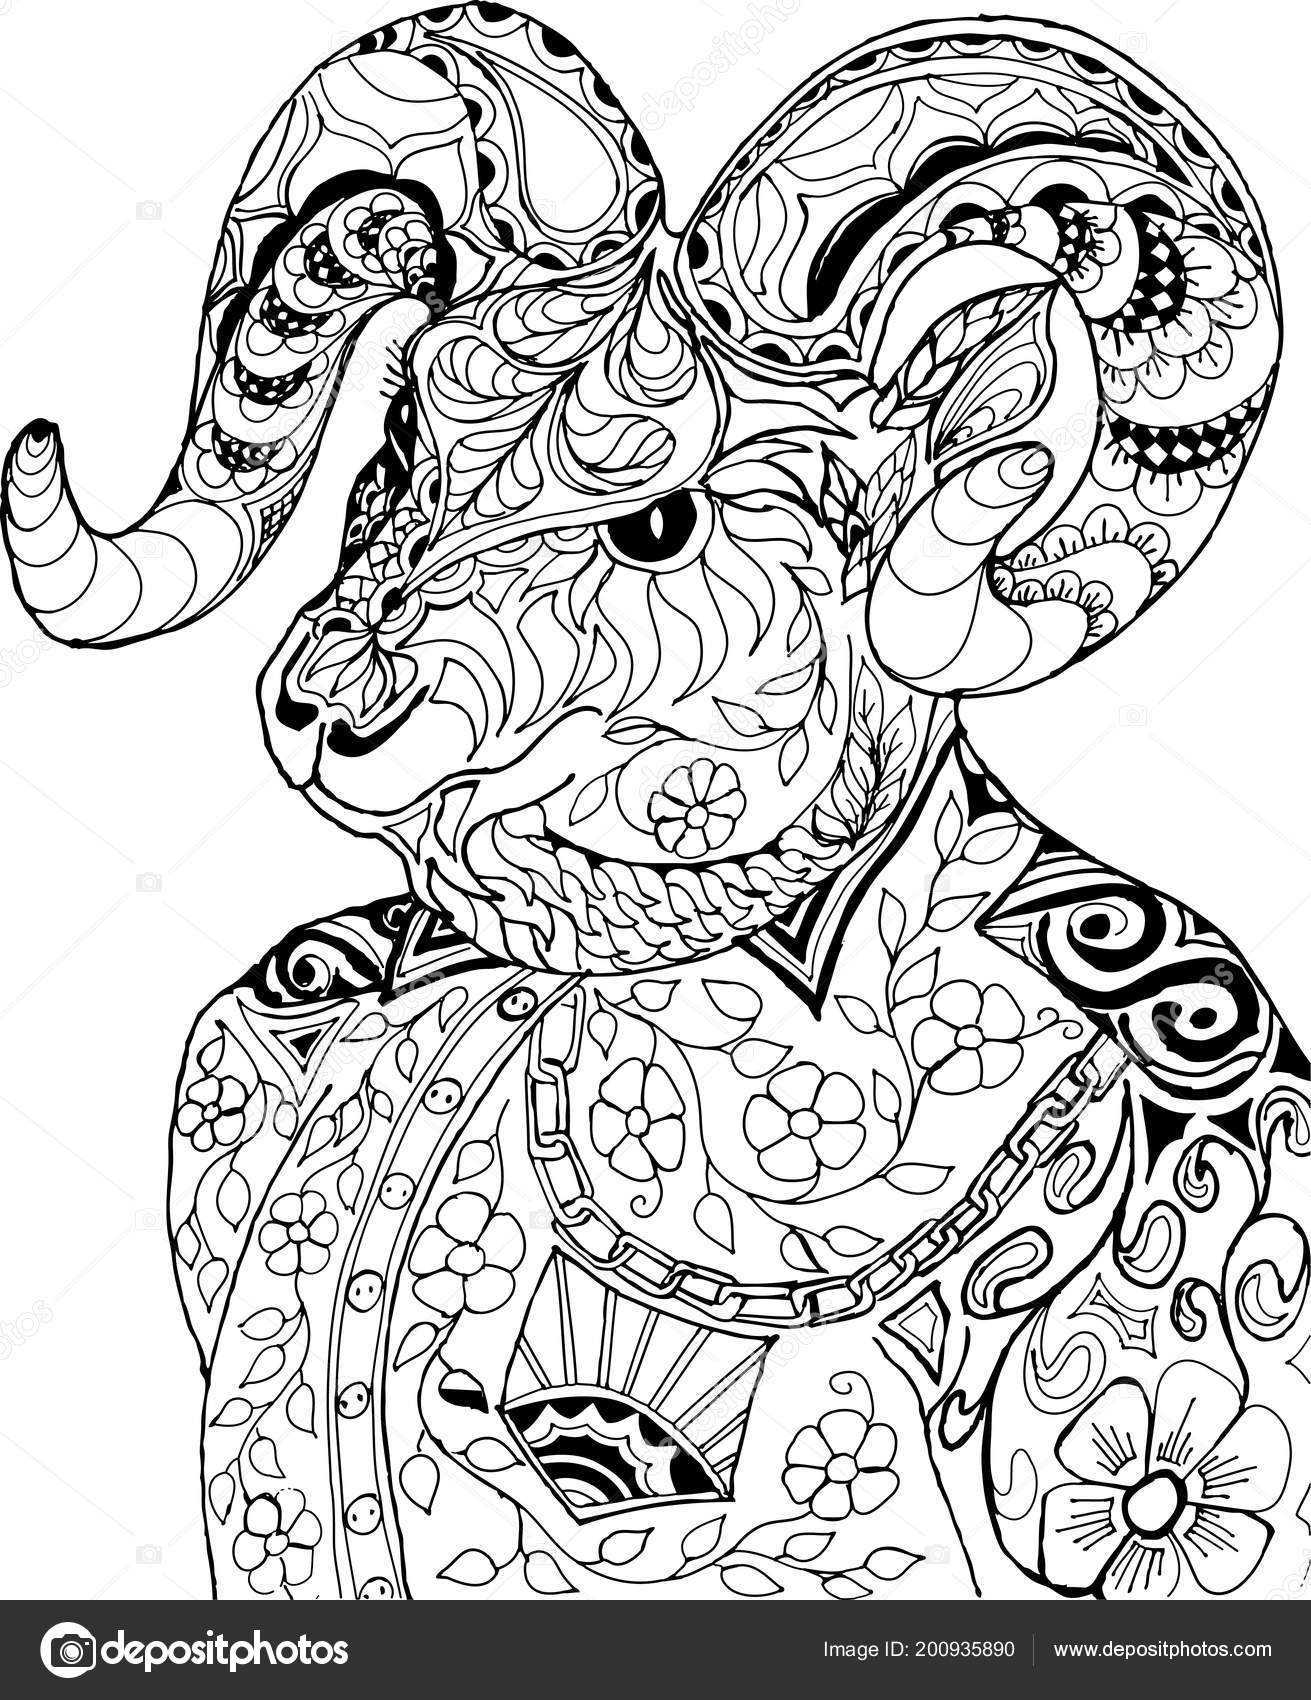 8b1c1cbfb Zentangle Stylized Cartoon Goat Coloring Antistress Coloring Goat — Stock  Vector